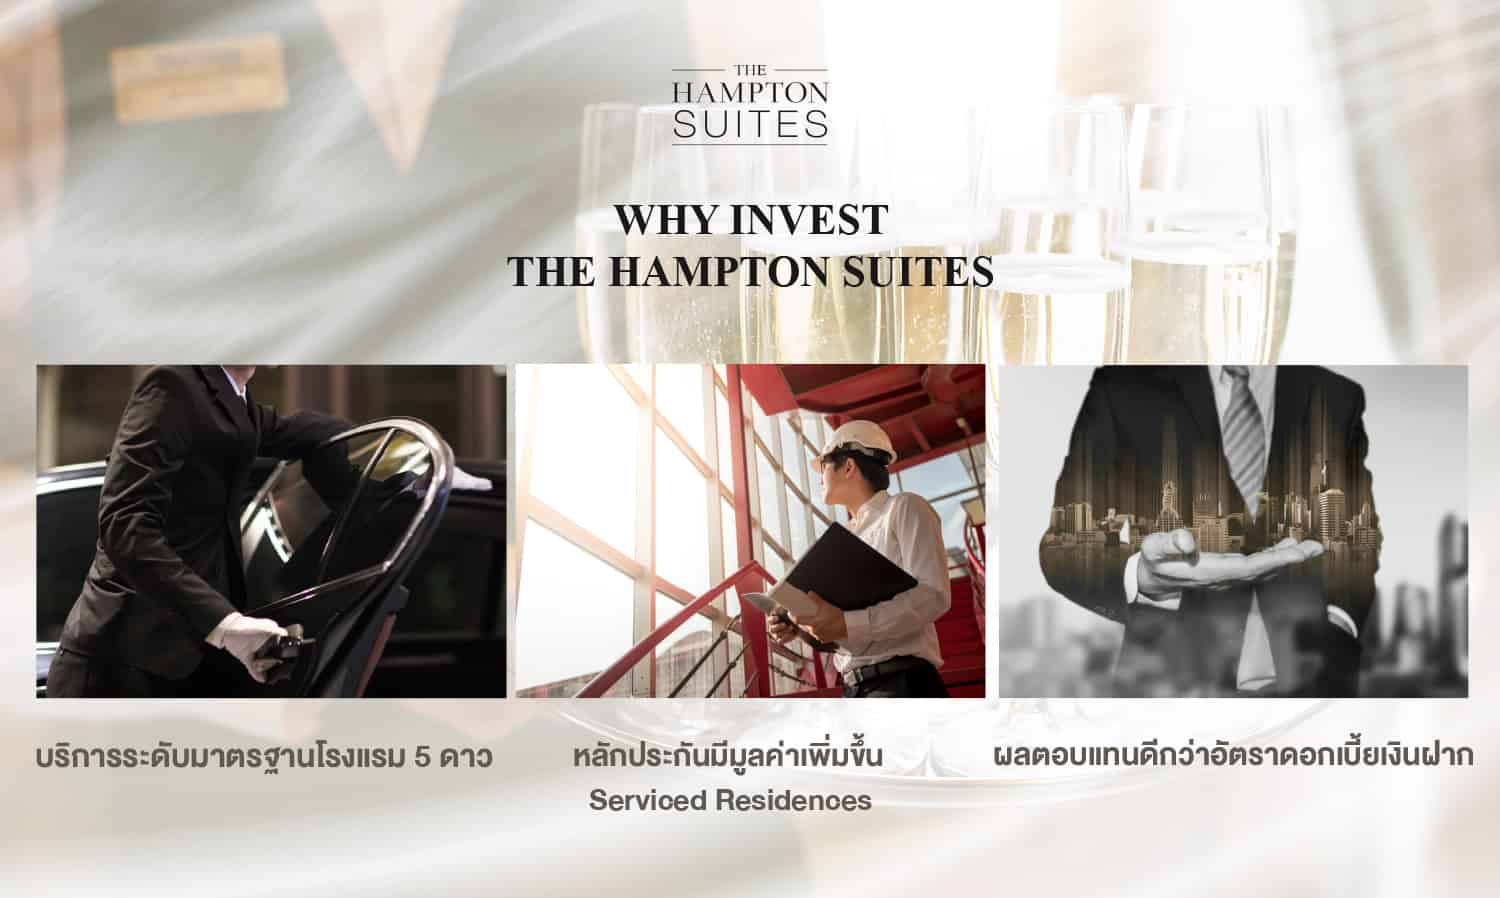 ลงทุน The Hampton Suites